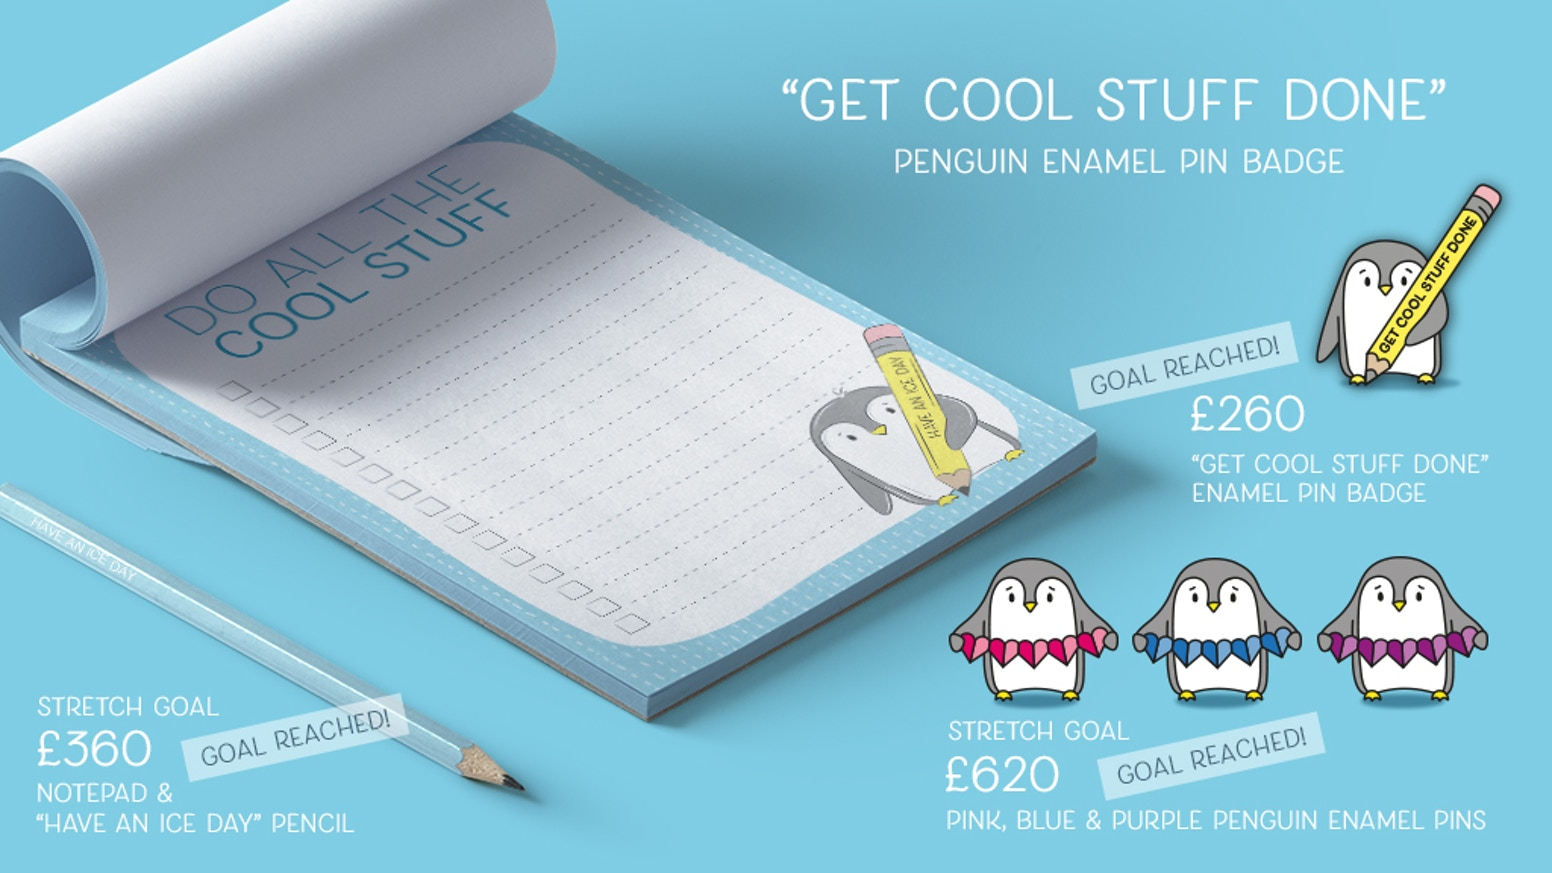 Do all the cool stuff. Penguin wants to encourage you to get the  cool stuff done with this new enamel pin design, notepad & pencil